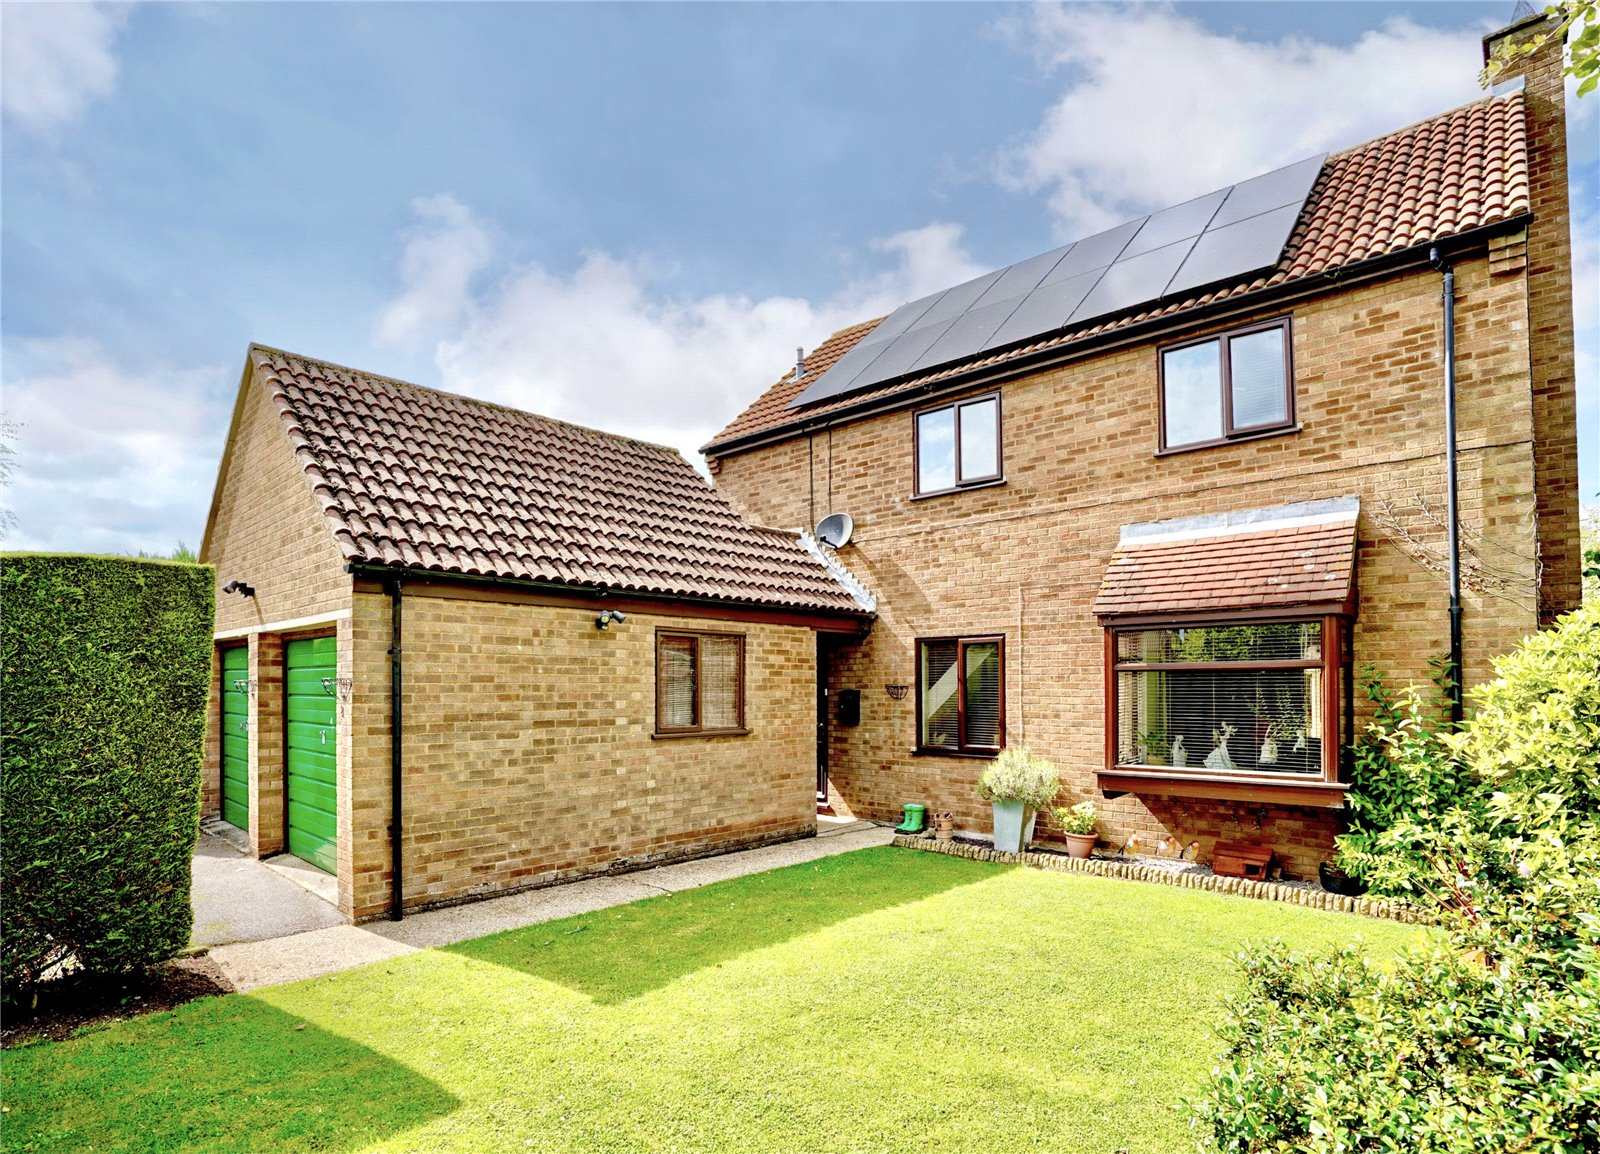 4 bed house for sale in Chestnut Close, Grafham - Property Image 1